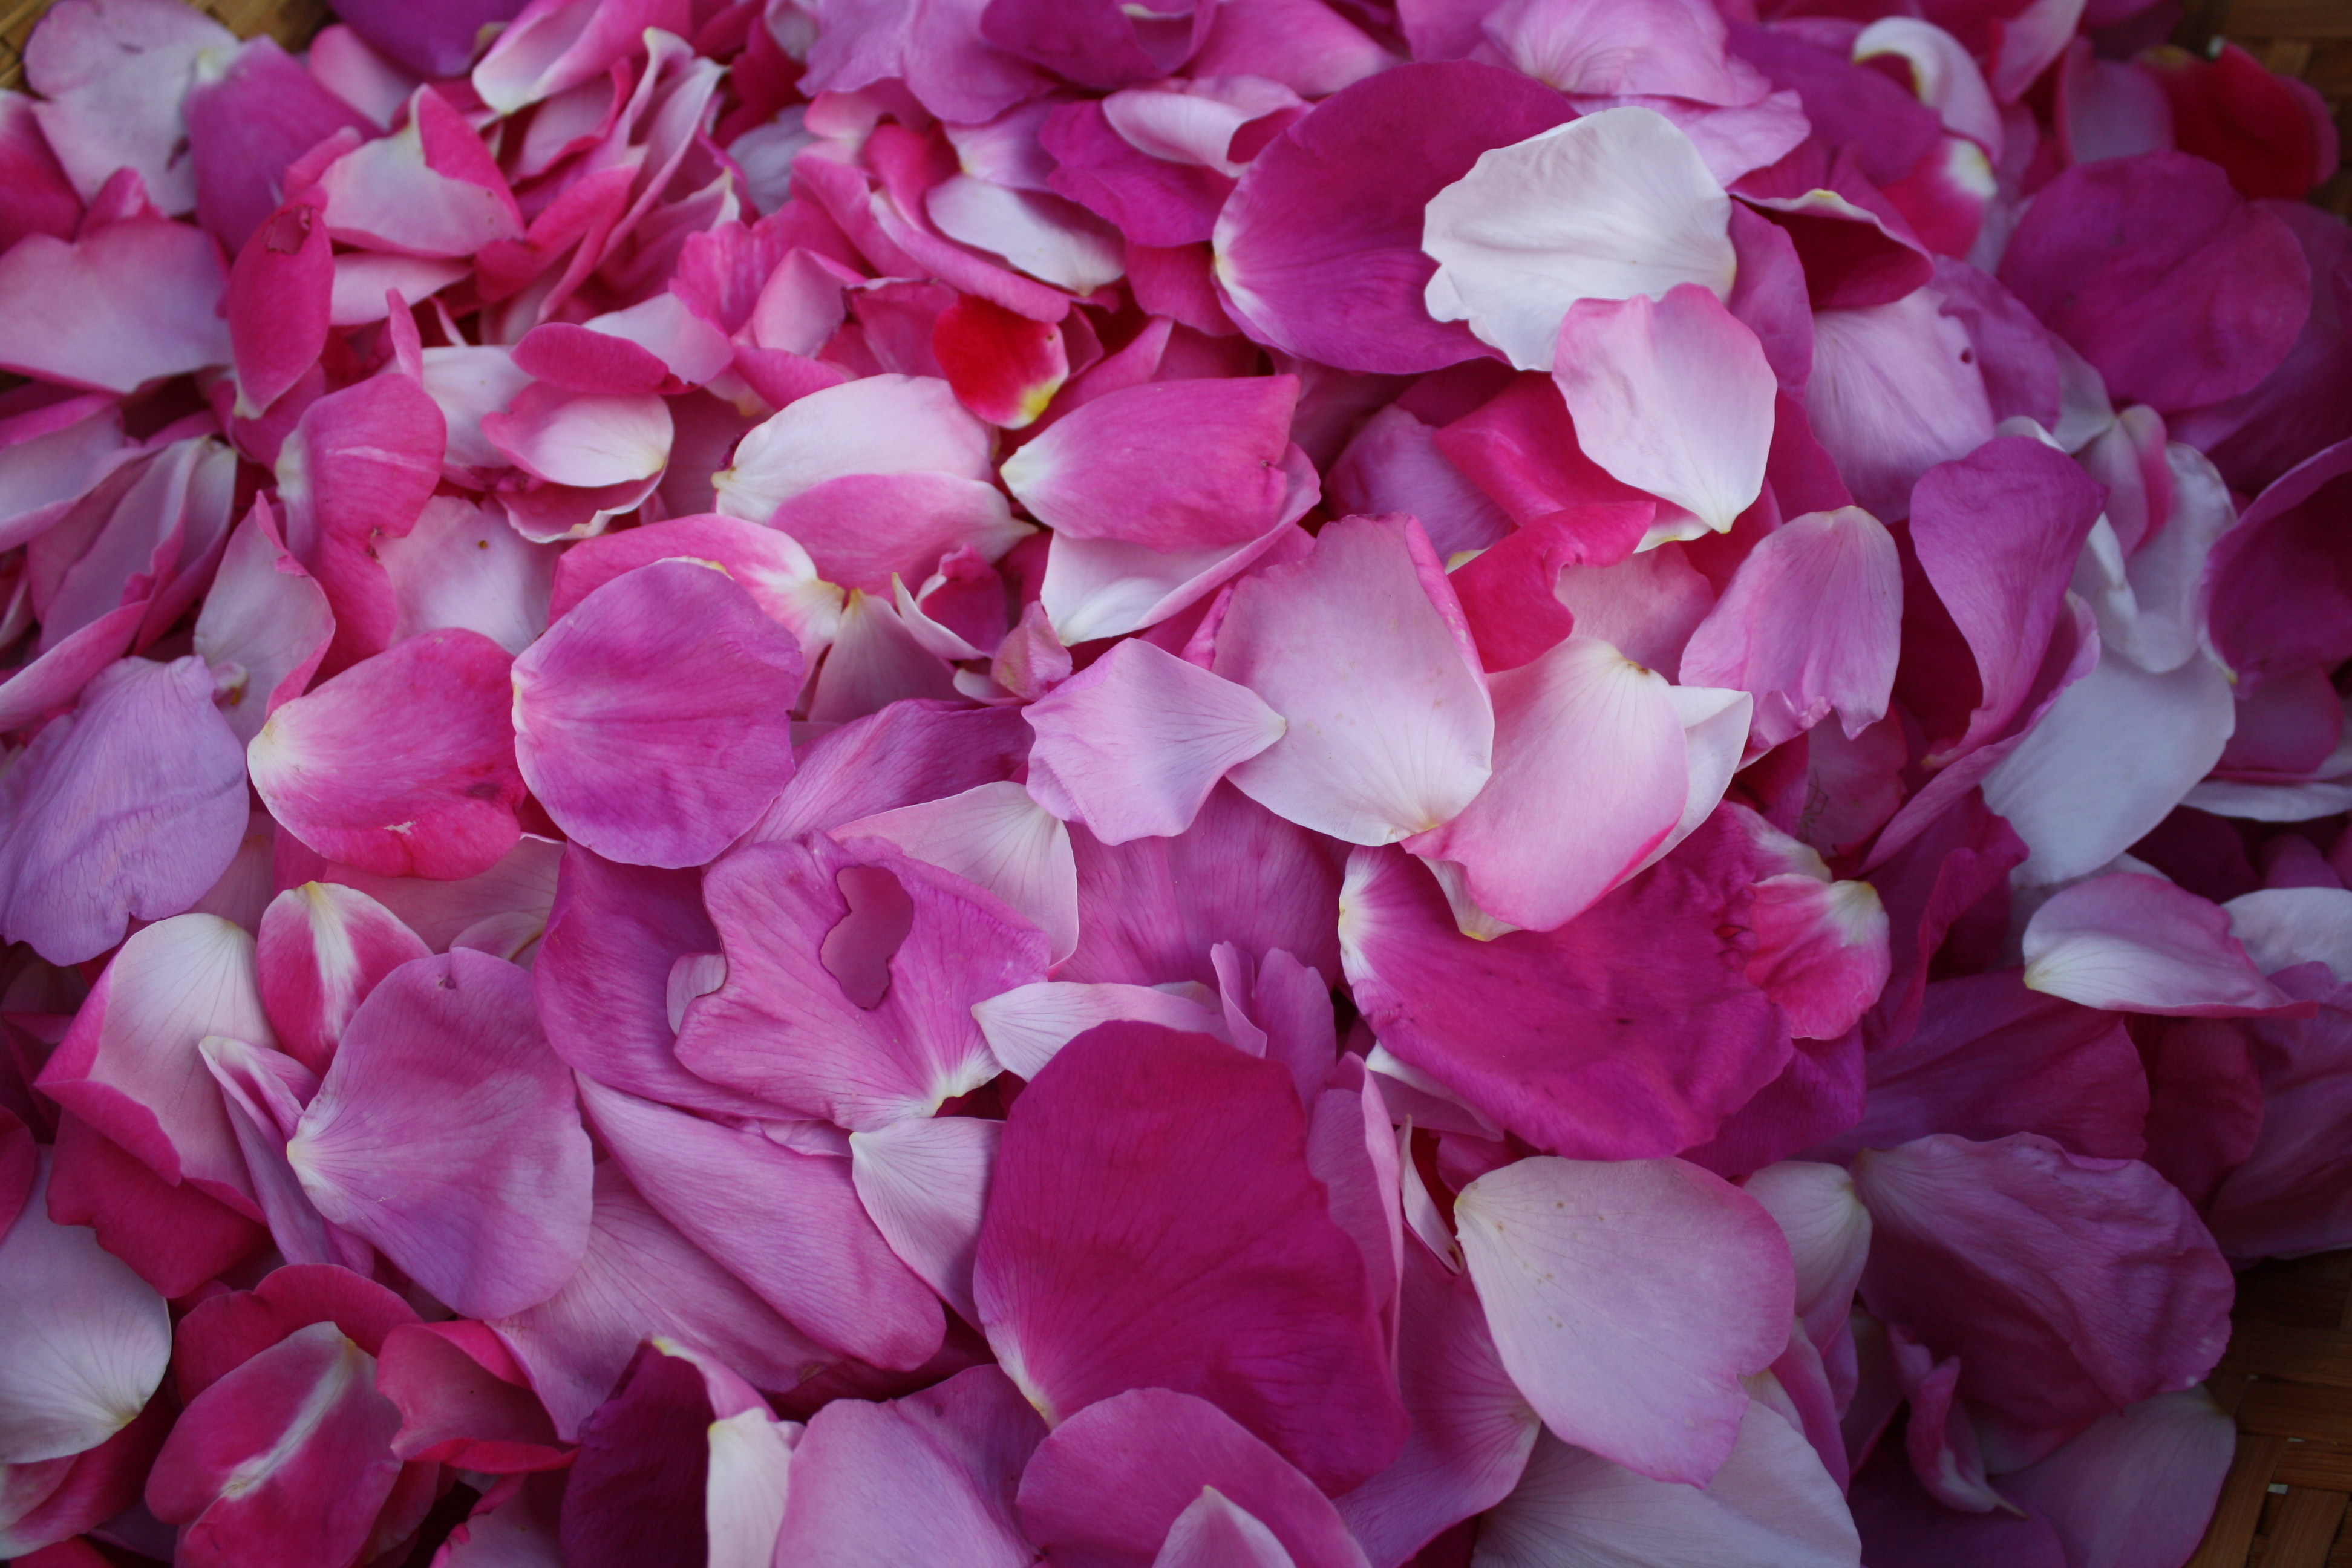 Dried rose petal chinese rose flower rose tea buy rose petal - Smelling Roses Makes Most Of Us Feel Very Good The Aroma